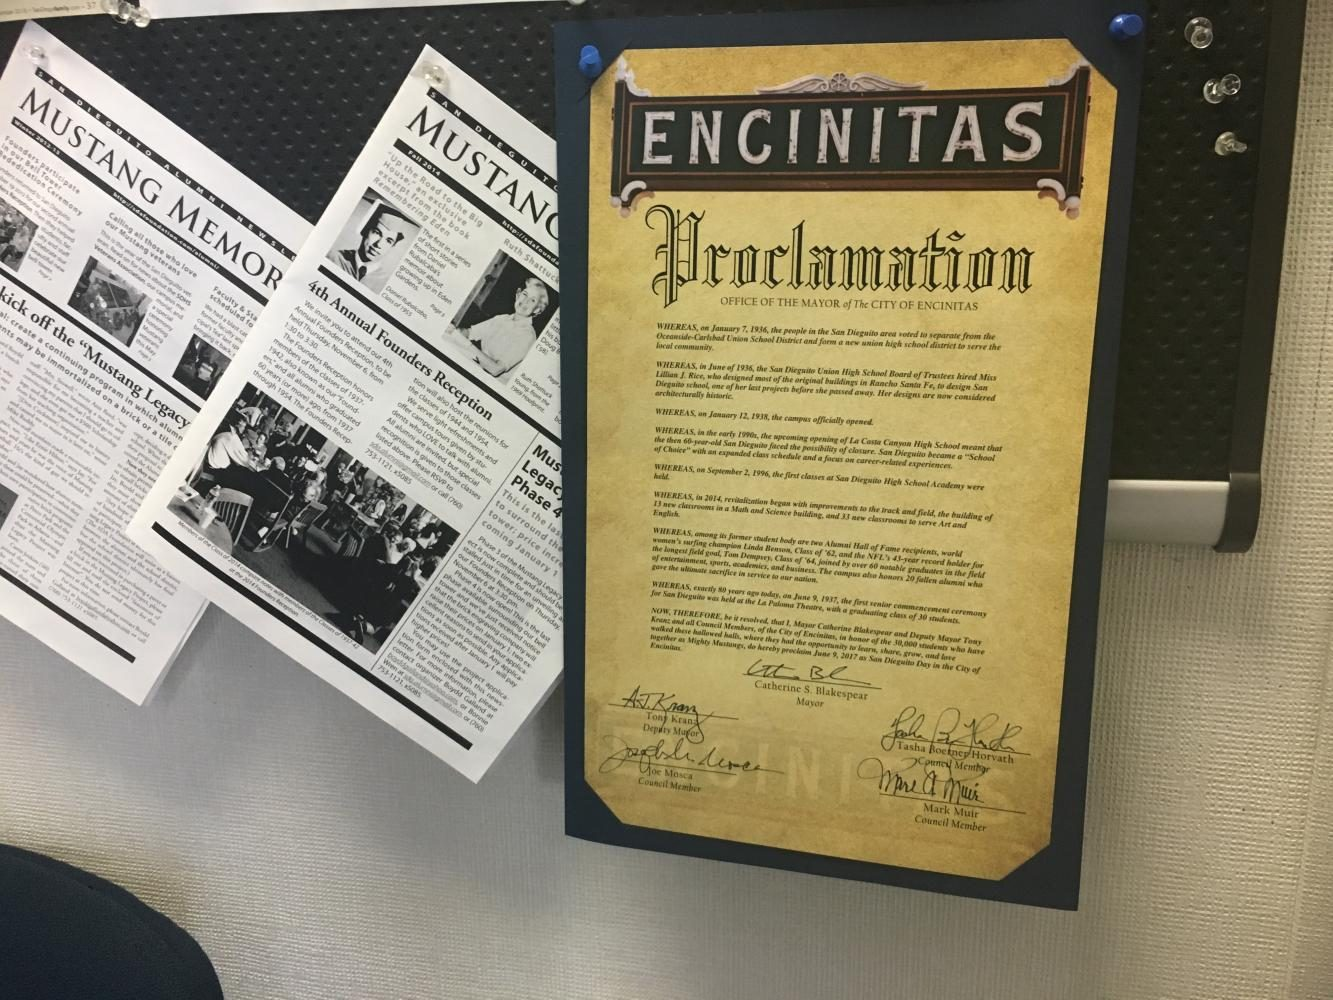 The+proclamation+from+the+City+of+Encinitas+hangs+on+the+bulletin+board+in+the+principal%27s+office.